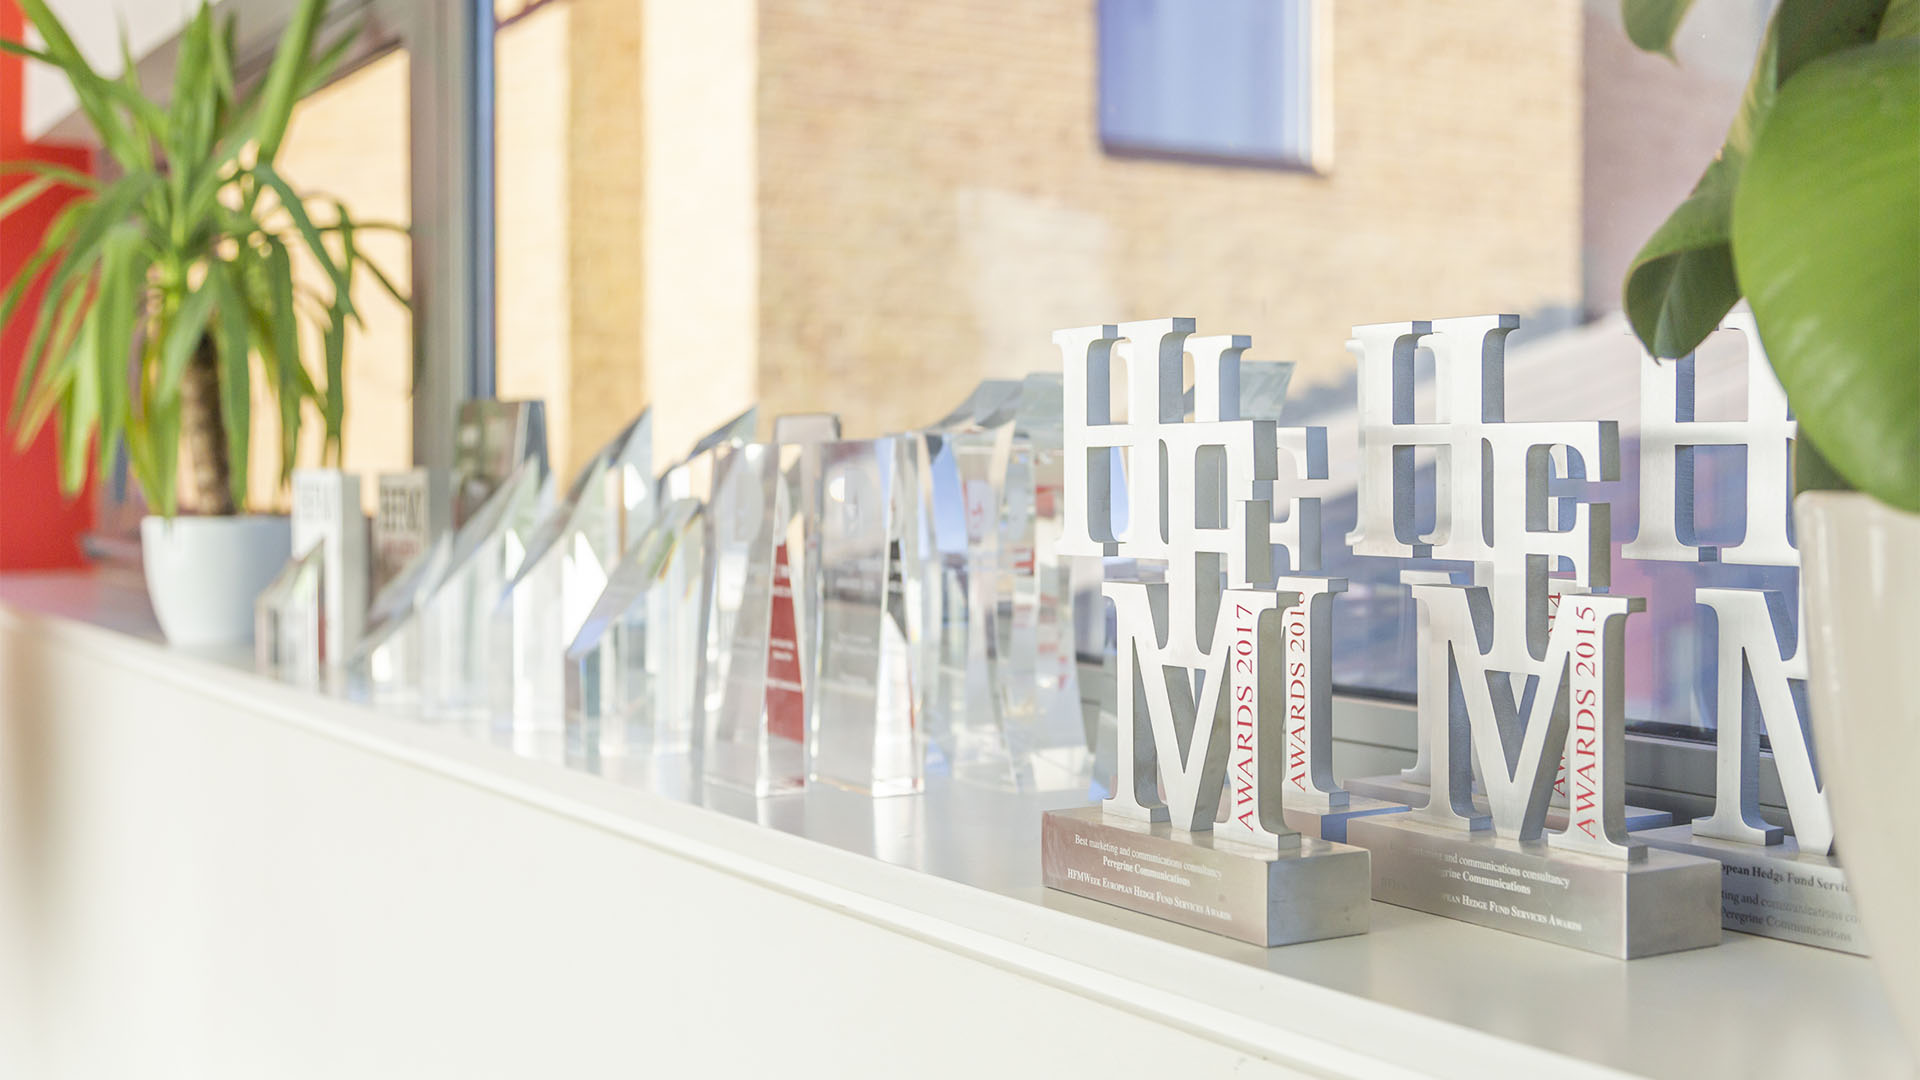 Multiple awards earned by Peregrine Communications